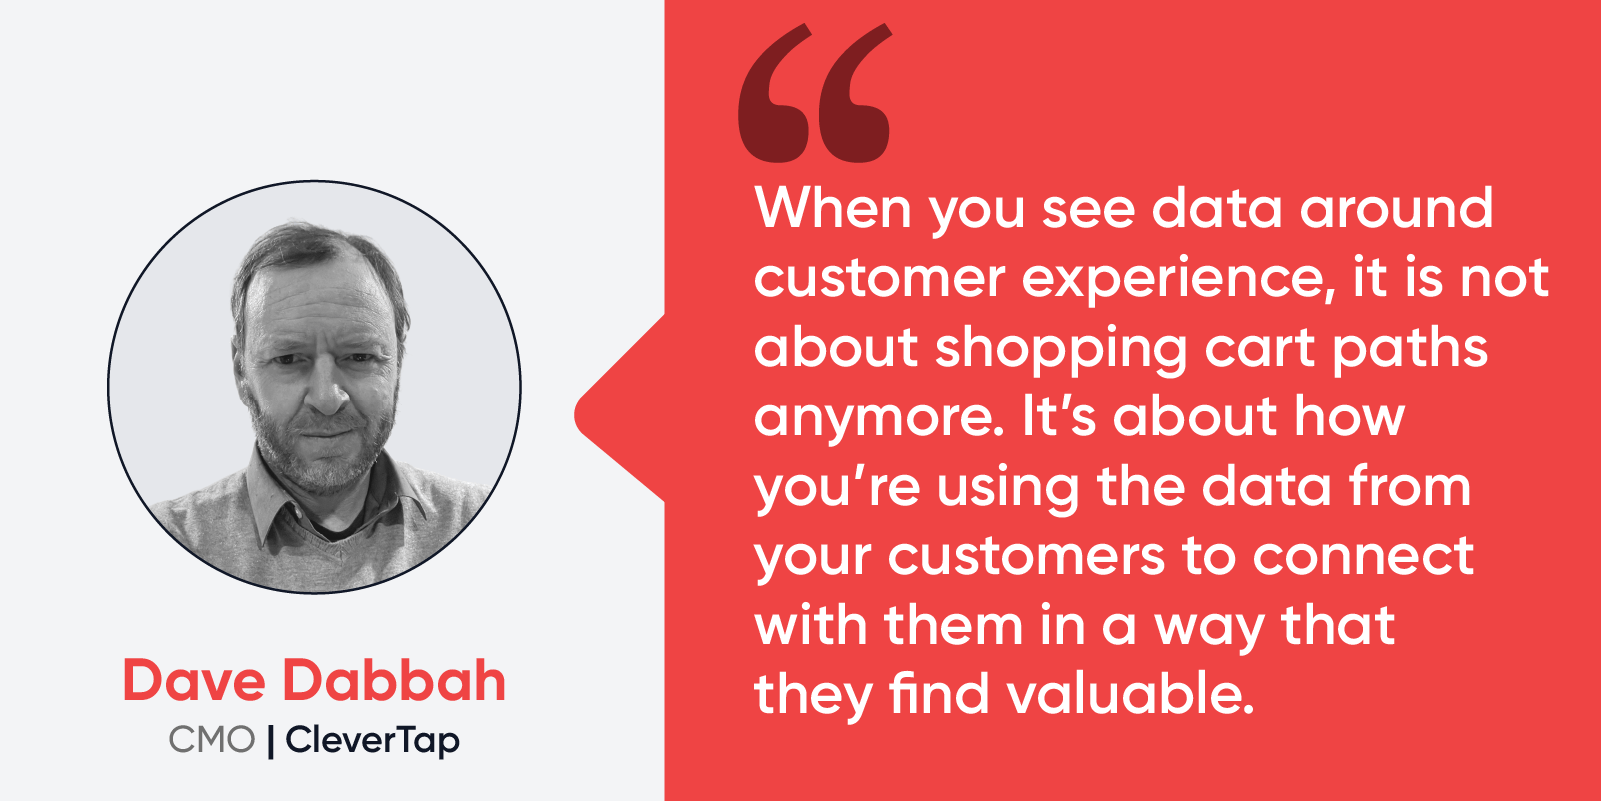 """Quote by Dave Dabbah, CMO at CleverTap: """"When you see data around customer experience, it is not about shopping cart paths anymore. It's about how you're using the data from your customers to connect with them in a way that they find valuable."""""""